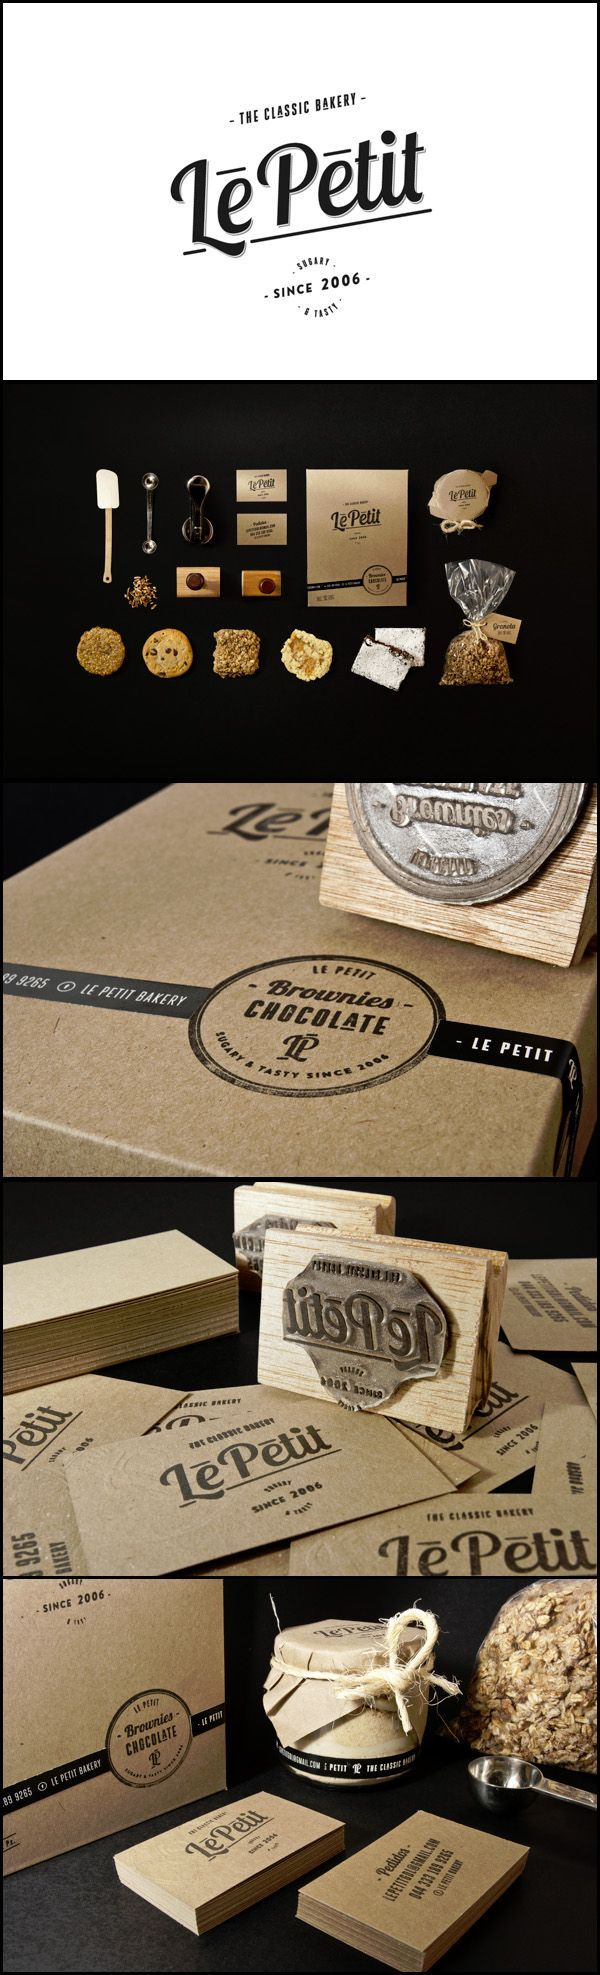 Le Petit Bakery Branding, Packaging